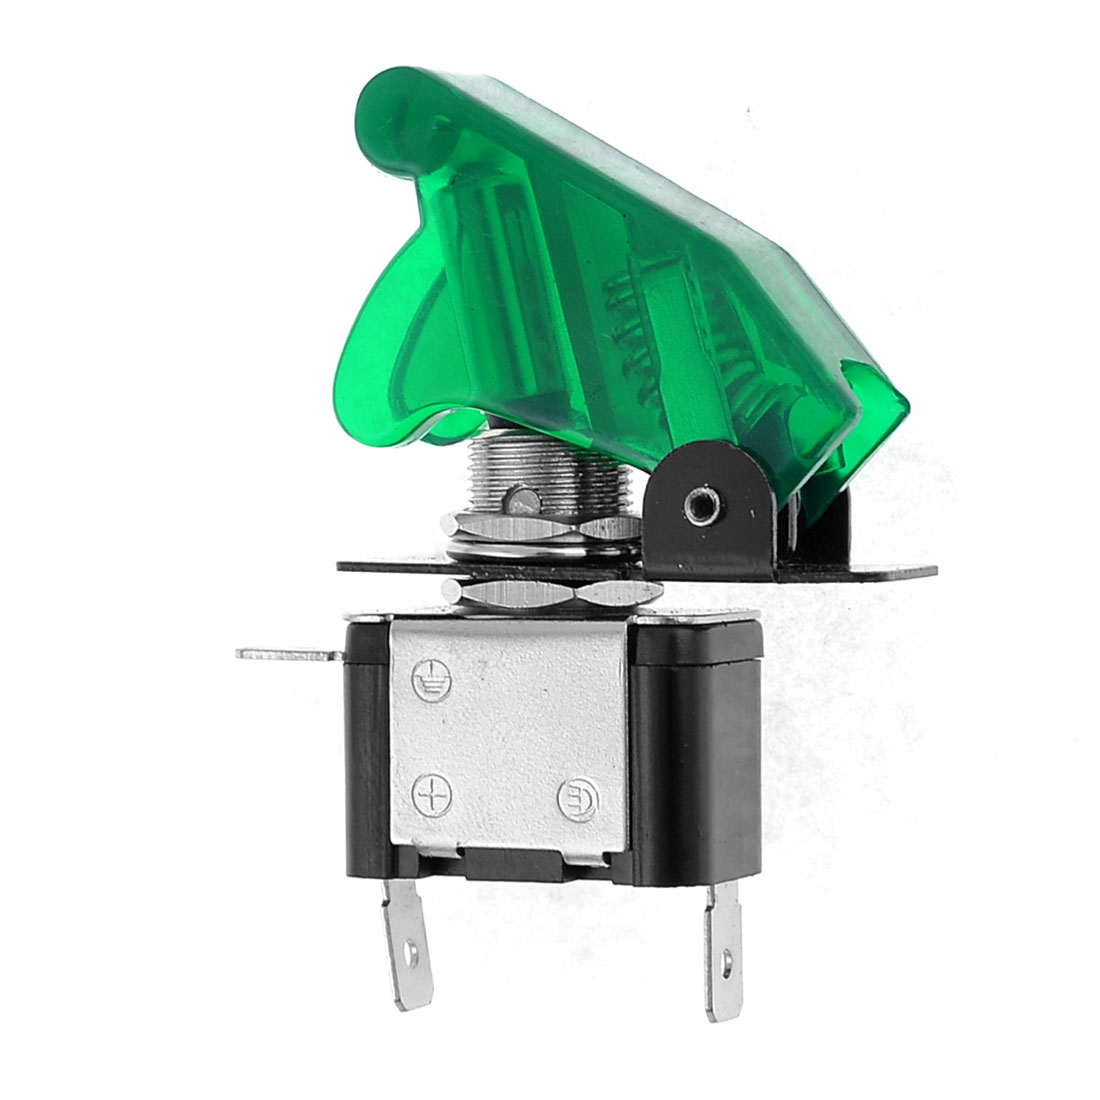 DC 12V 20A Green LED Illuminated SPST Racing Car Toggle Switch Control ON/OFF